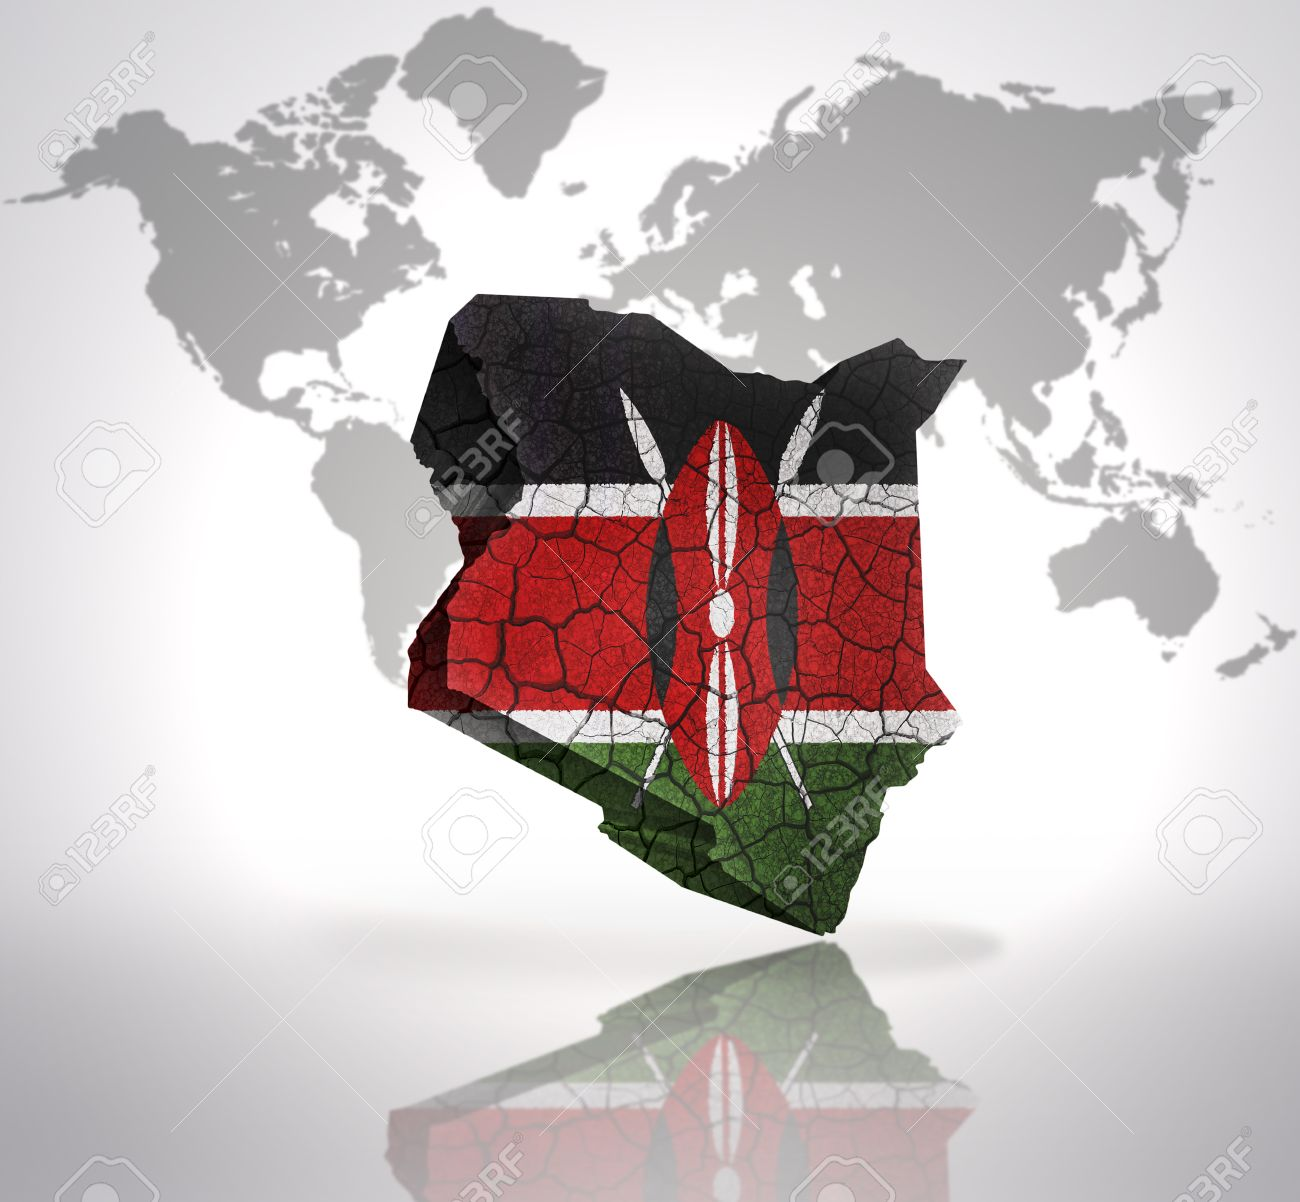 Map Of Kenya With Kenyan Flag On A World Map Background Stock